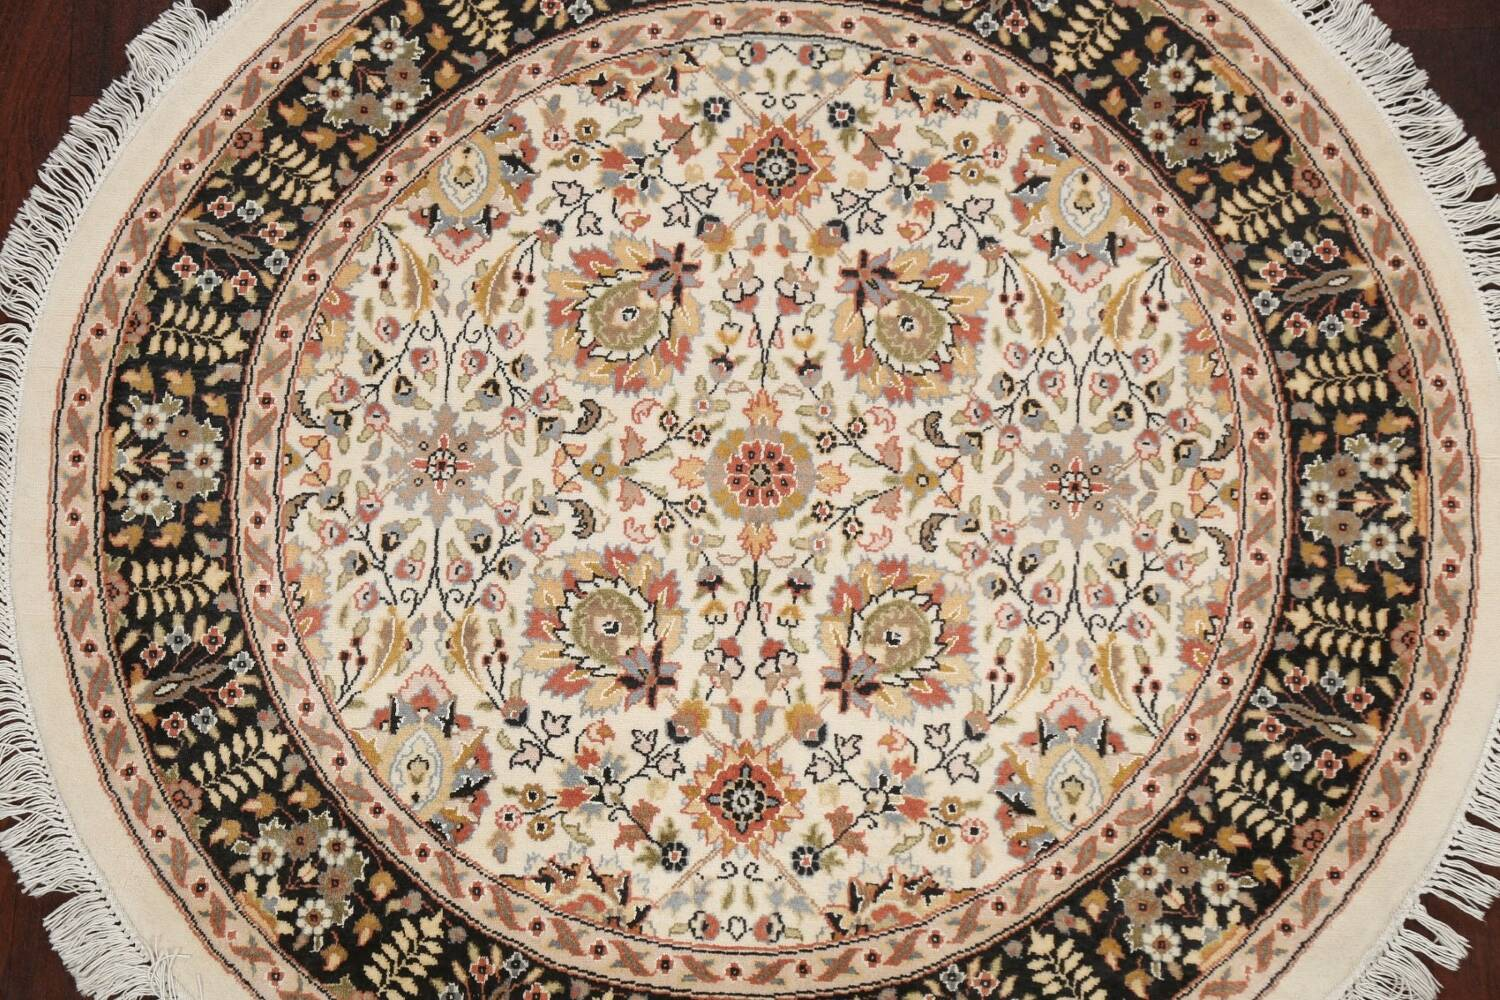 Vegetable Dye Round Royal Tabriz Oriental Area Rug 4x4 image 3